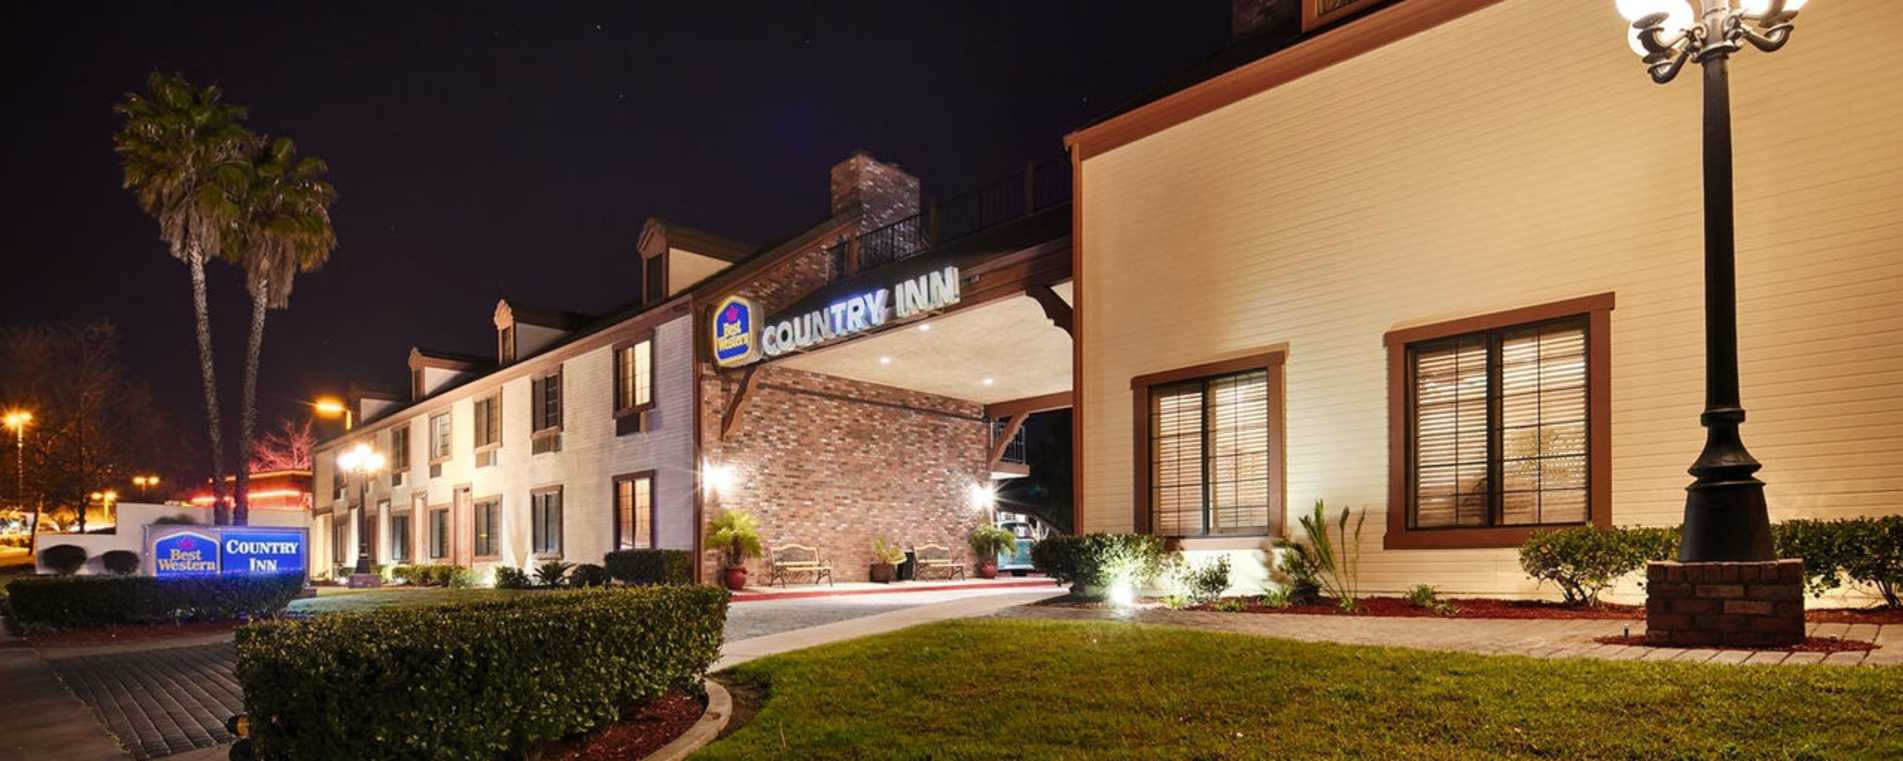 Best Western Country Inn - Temecula